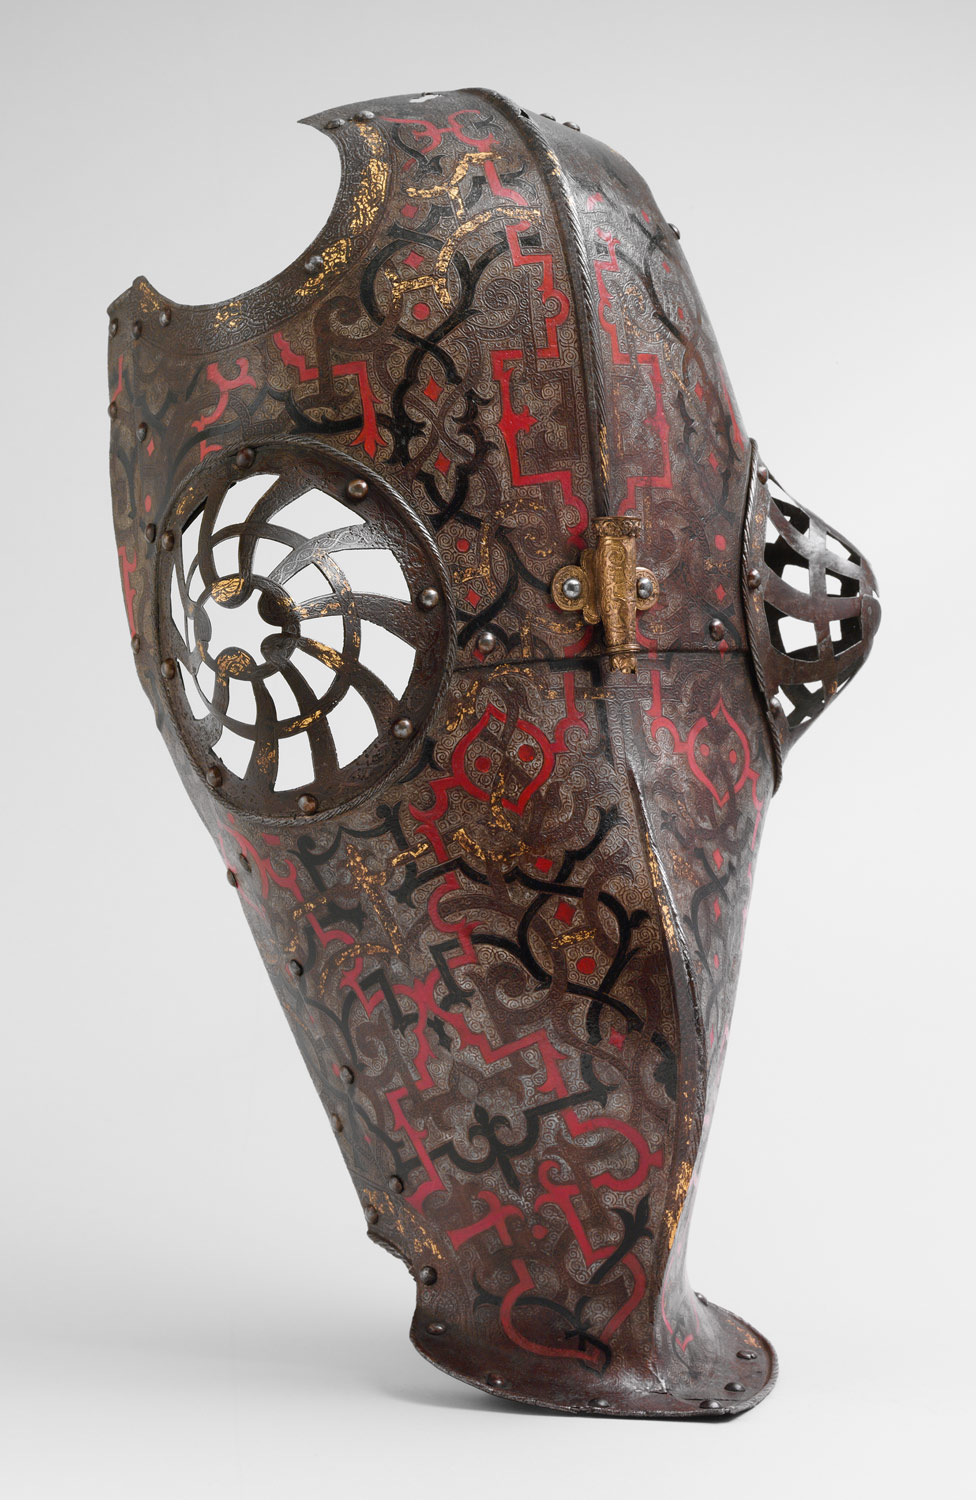 Shaffron Belonging to an Armor for Field and Tournament Made for Duke Nikolaus The Black Radziwill (1515–1565), Duke of Nesvizh and Olyka, Prince of the Empire, Grand Chancellor and Marshal of Lithuania